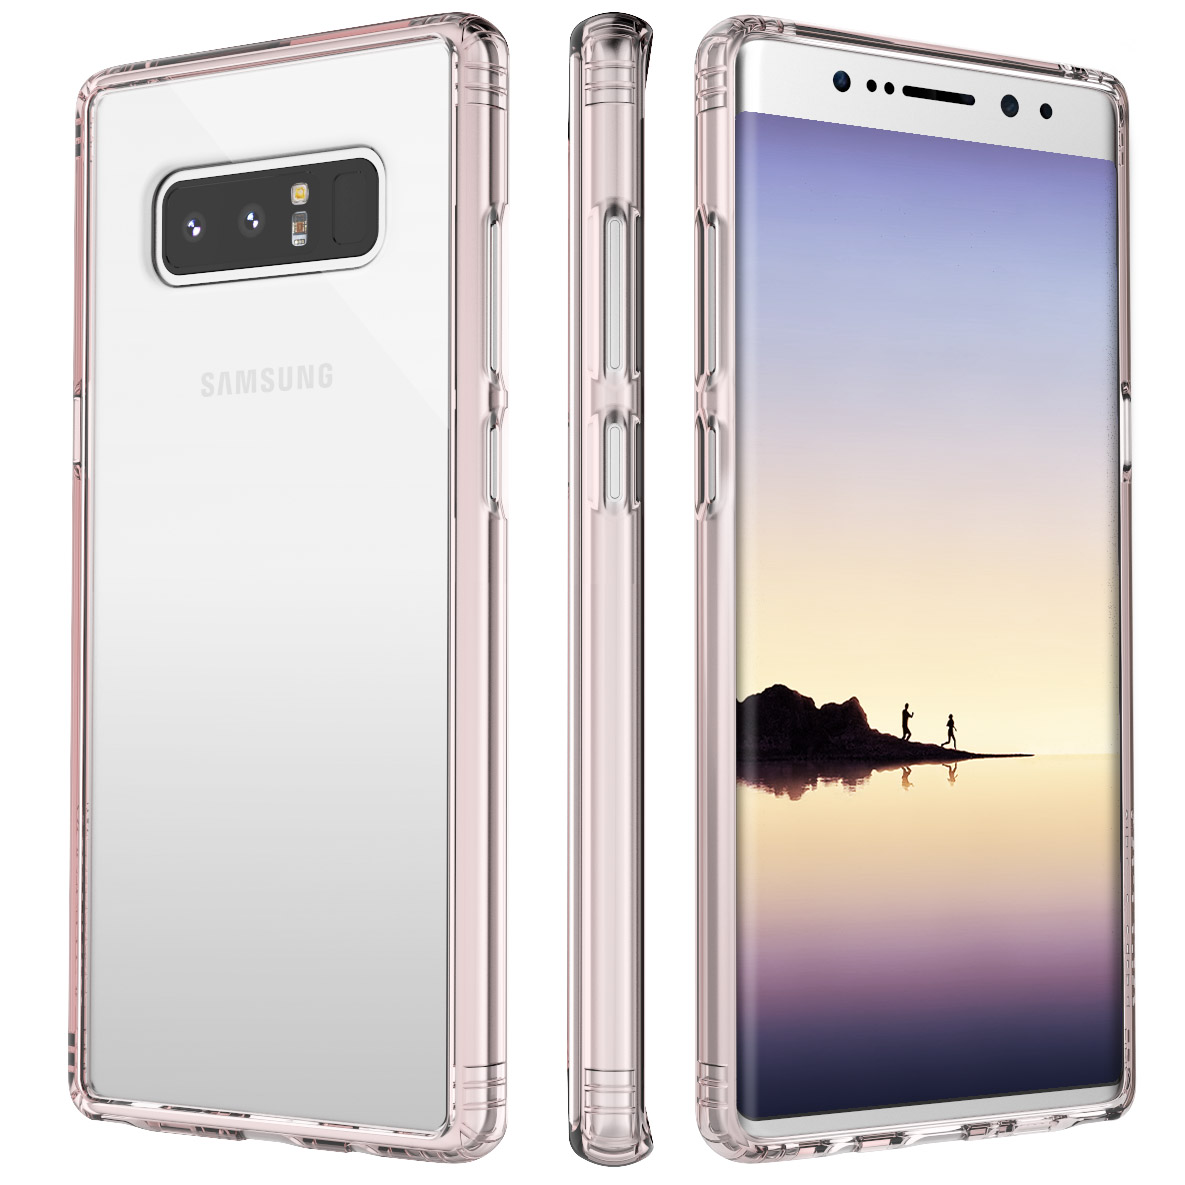 Saharacase Ocl-S-N8-Rog/Cl Classic Case For Samsung Galaxy Note 8, Rose Gold Clear